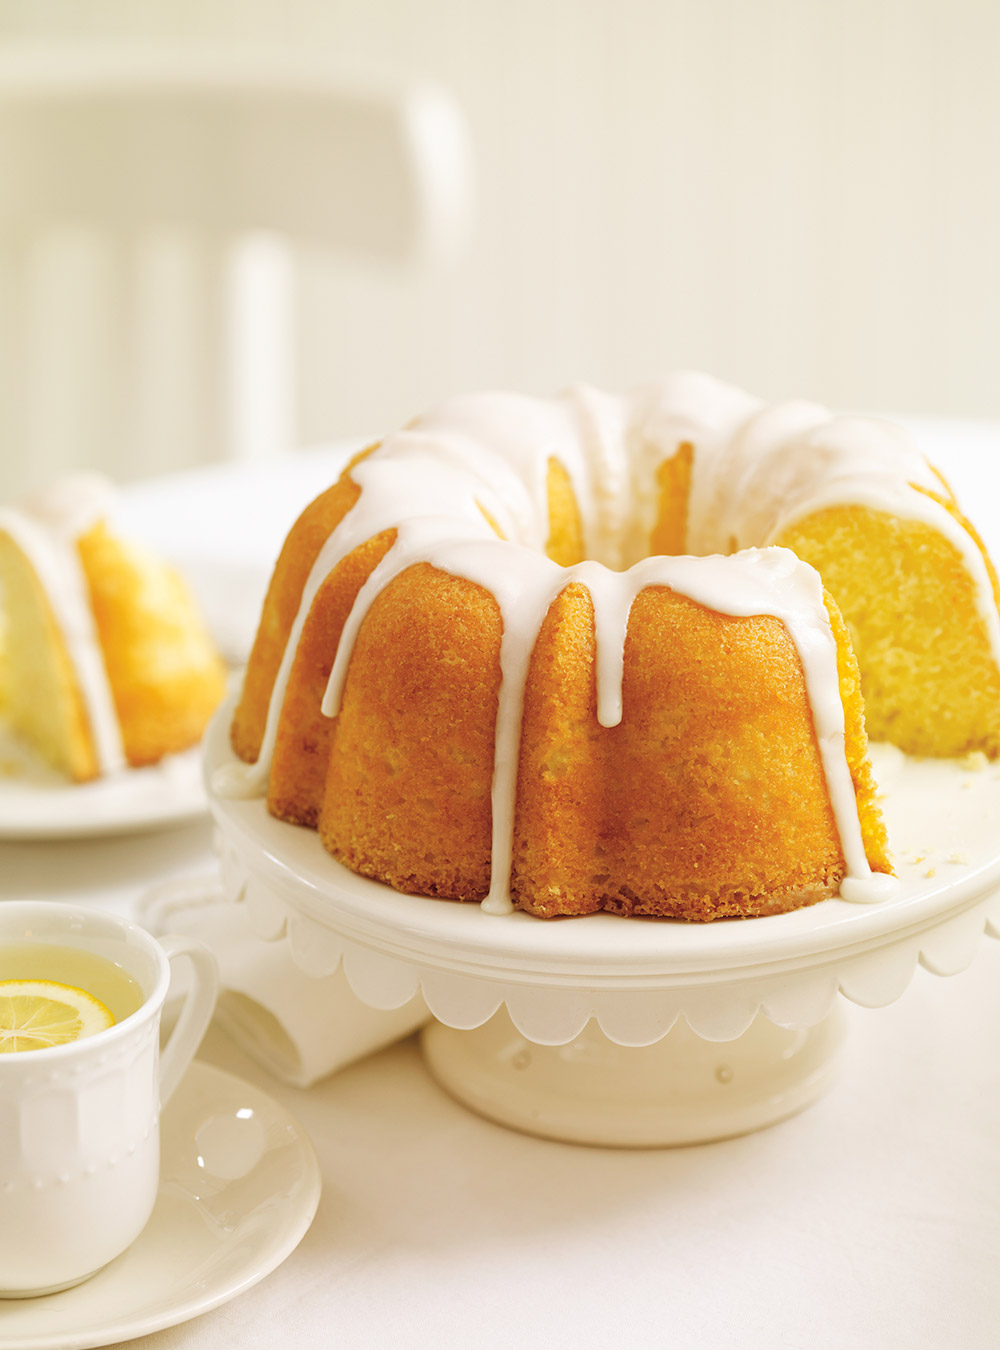 Permalink to Lemon Bundt Cake Recipe